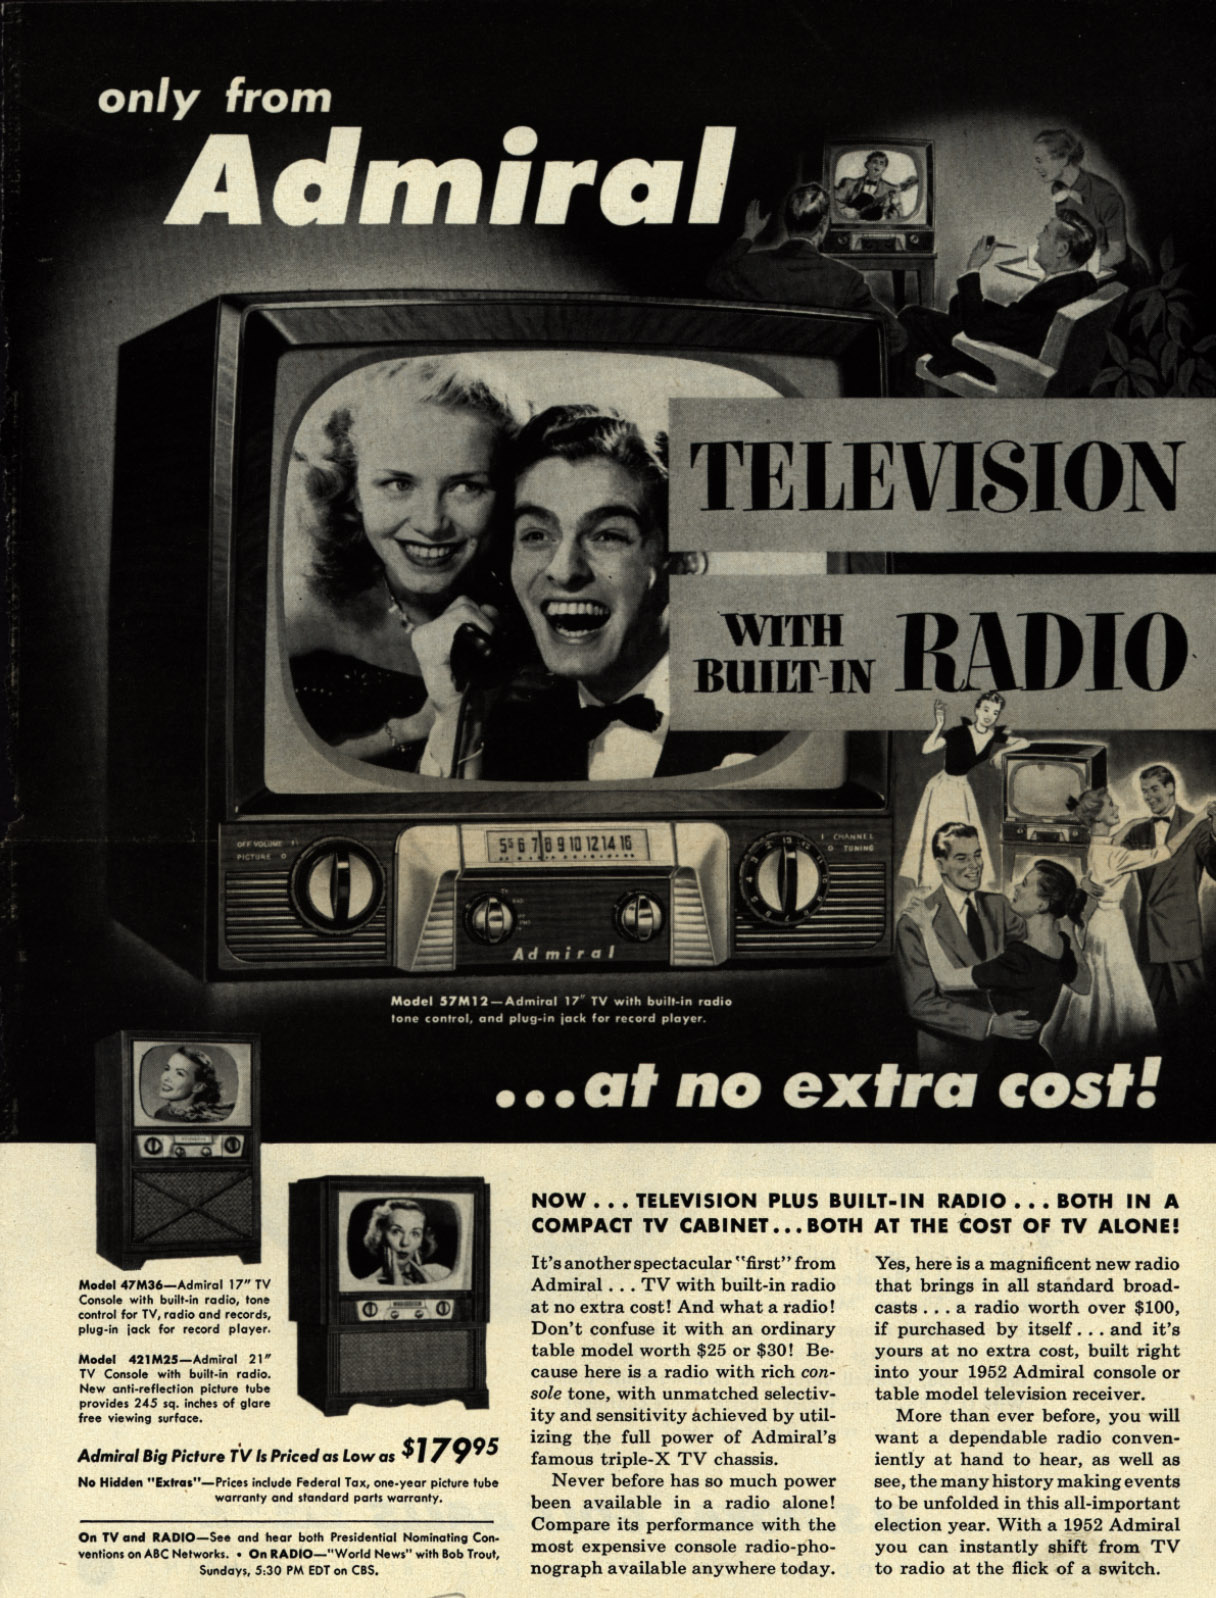 Only_From_Admiral._Television_With_Built-In_Radio_..._At_No_Extra_Cost-2